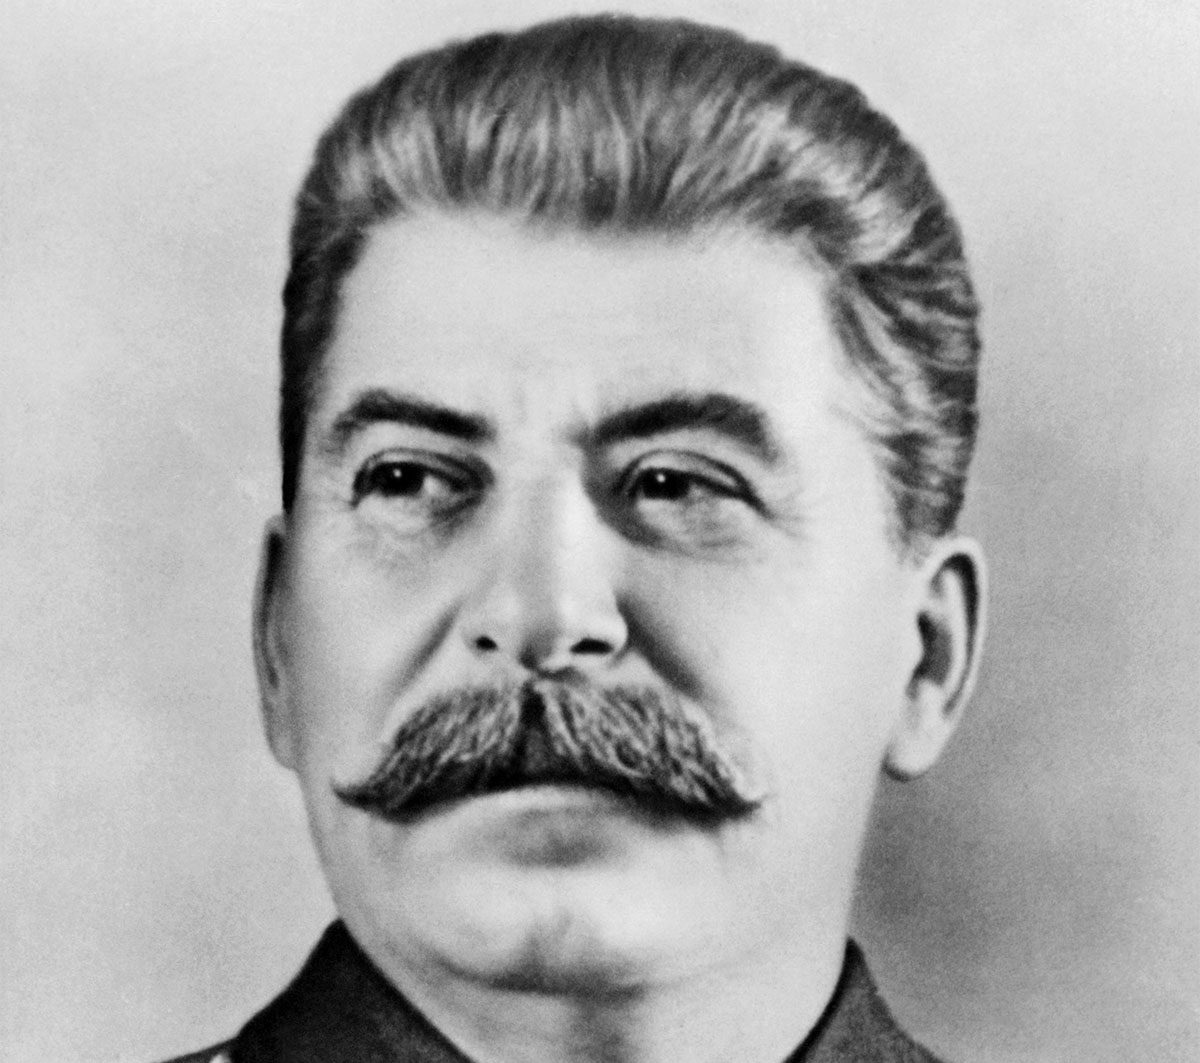 Was Stalin good for the Jews? Definitely not. But his mustache...